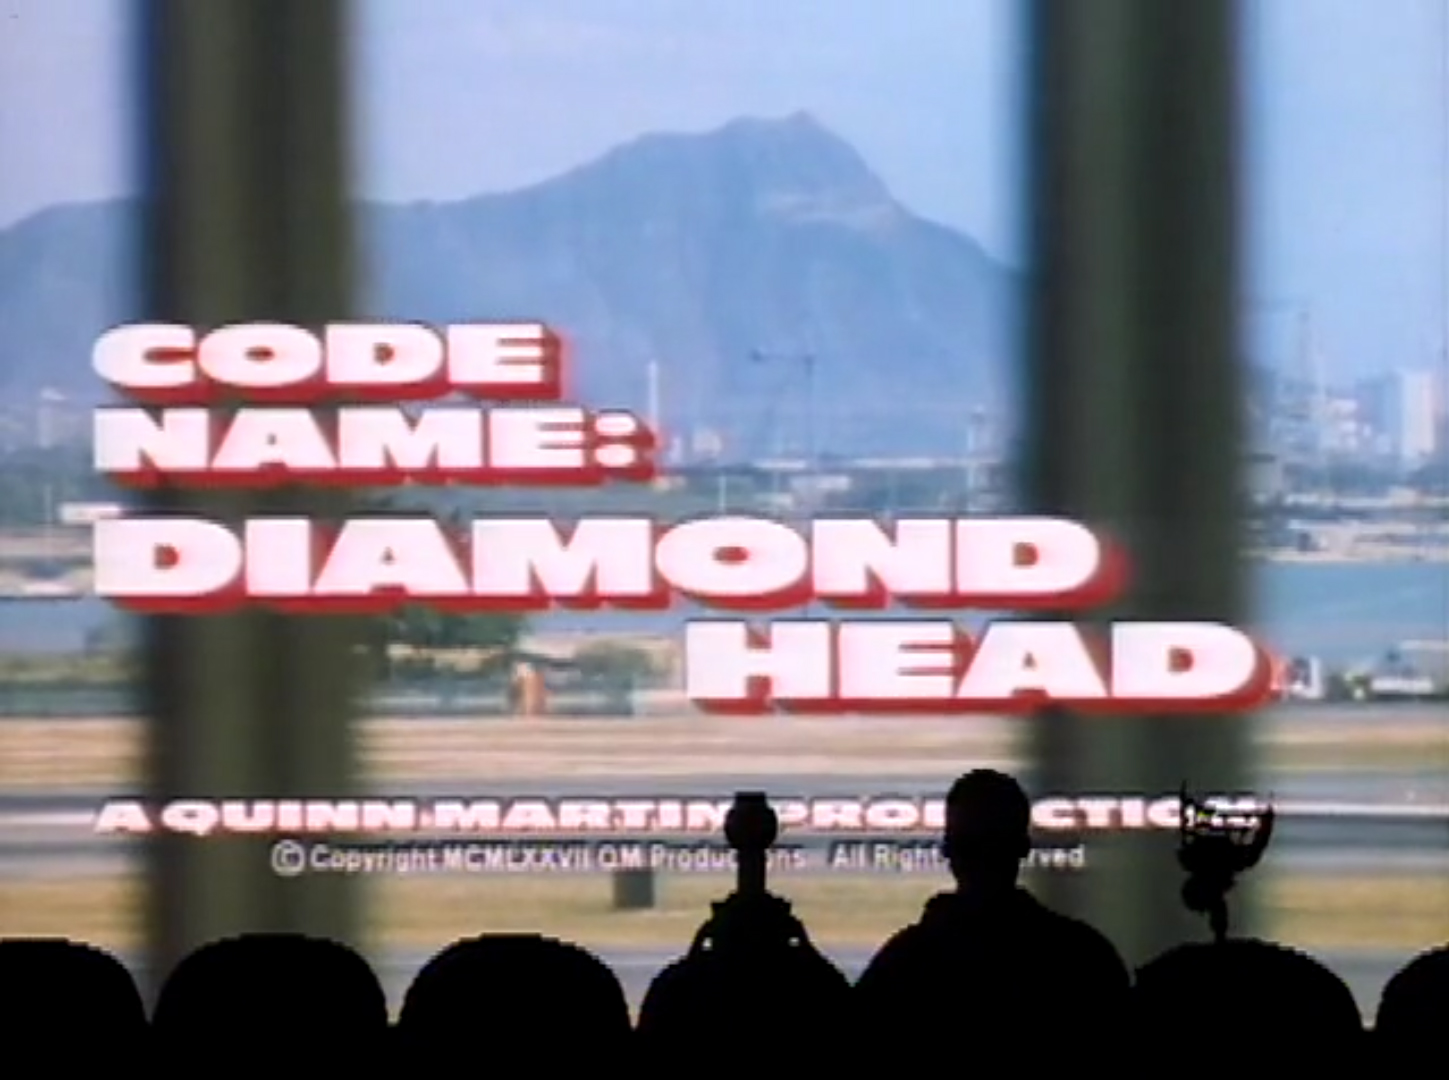 MST3K Monday: Code Name: Diamond Head